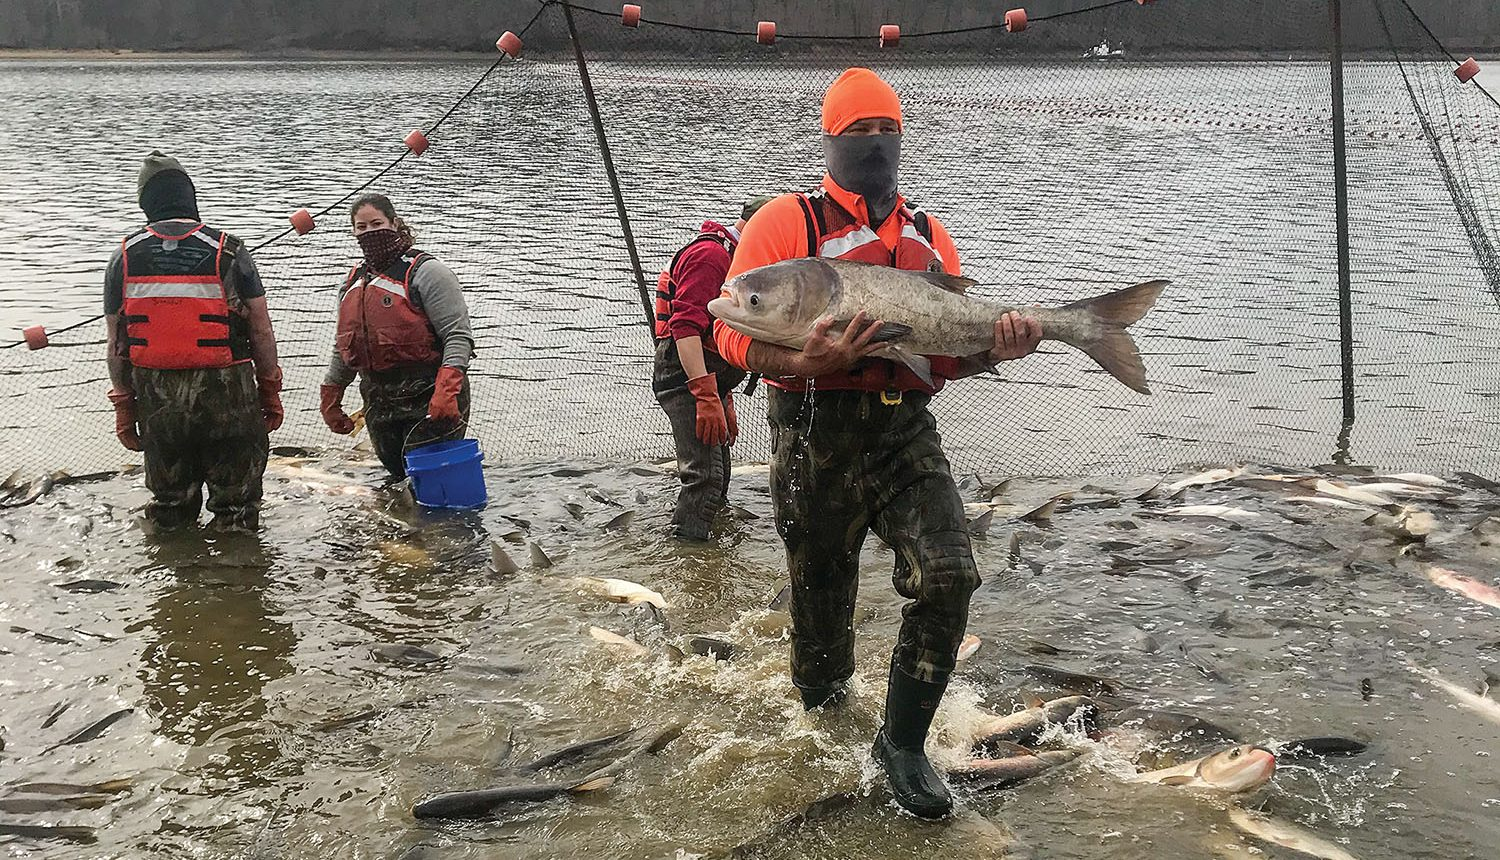 Jesse Fischer carries a bighead carp, one of four species of the invasive Asian carp, during USGS experiments in Kentucky Lake's Pisgah bay. The bighead carp are far less populous than the silver carp, which were most of what were netted during the research. Part of the work involves a depletion study to determine Asian carp populations in the studied bays. (Photo courtesy of U.S. Geological Survey)